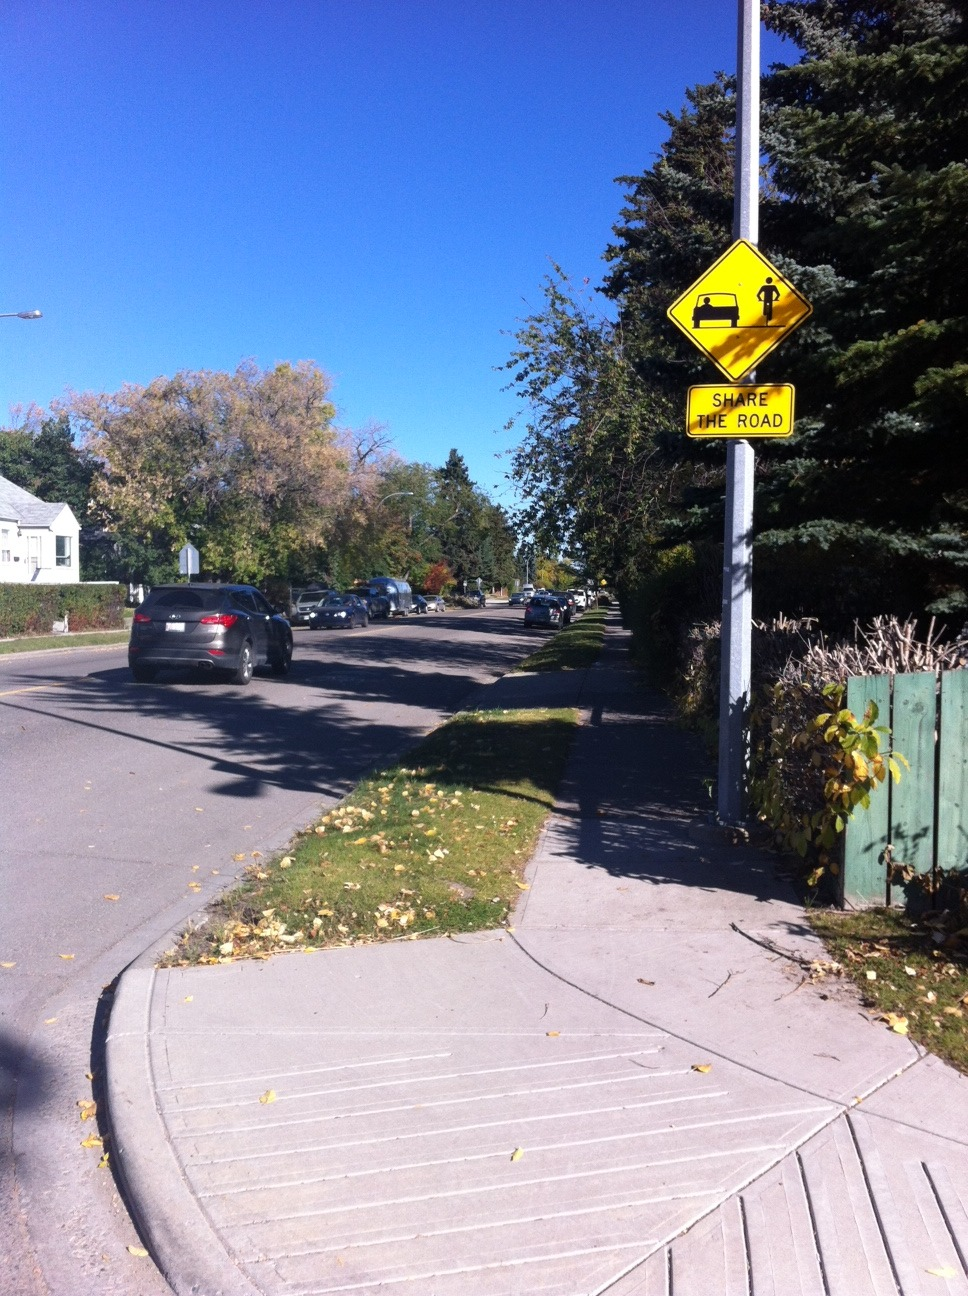 Calgary roads for the most part have lots of room for pedestrians, cyclist and drivers if we respect each other and share the road. Share The Road signs are a good reminder that EVERYONE is responsible for sharing the road.